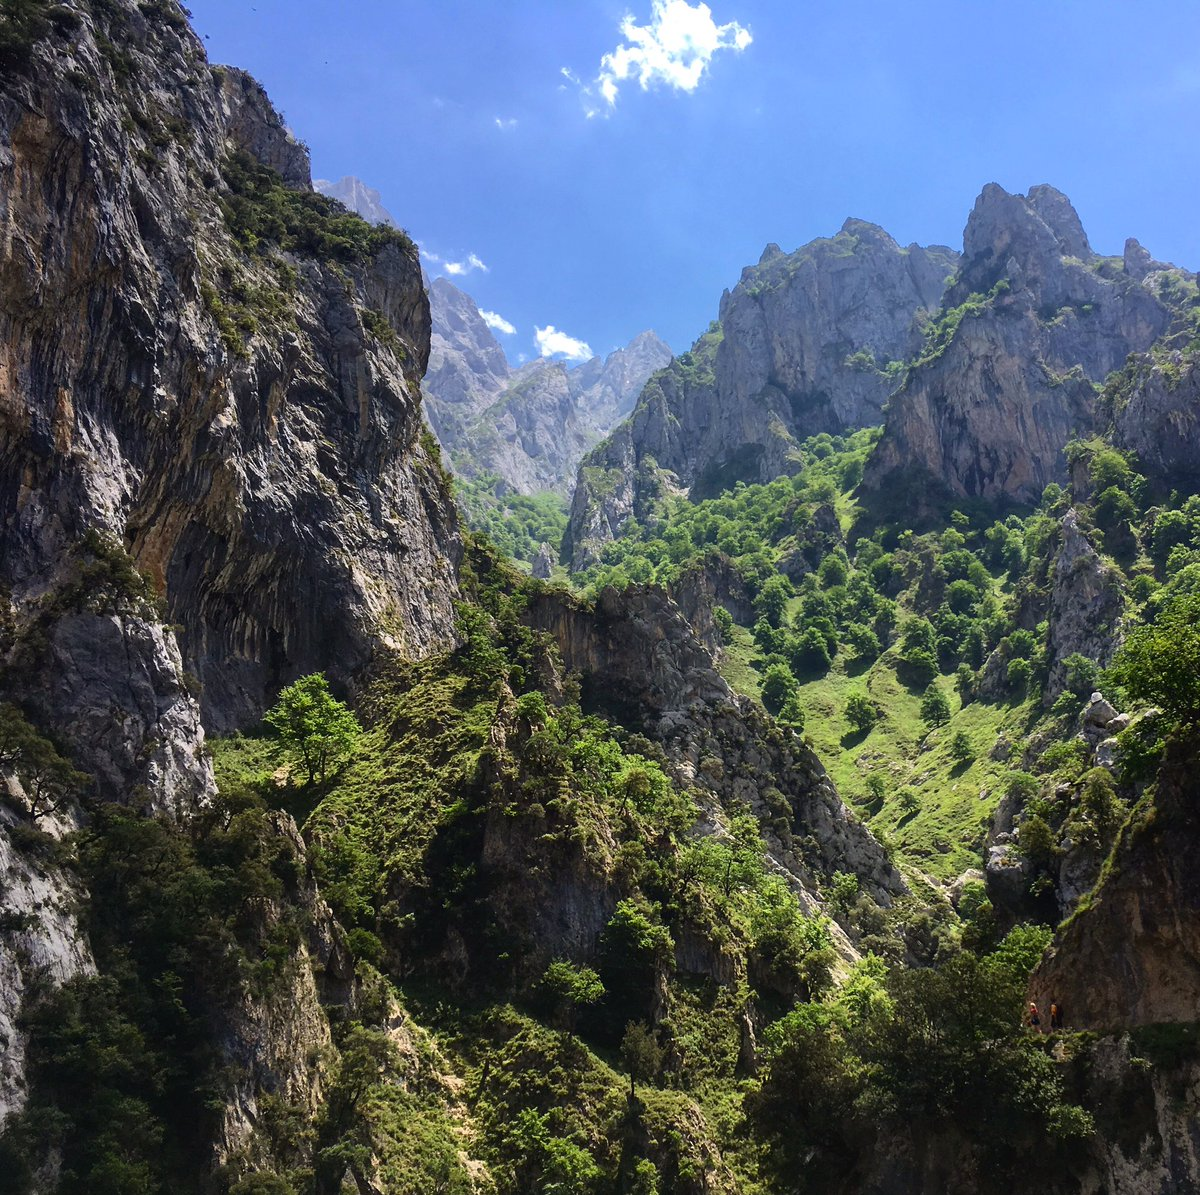 For a reminder of nature&#39;s grandeur hike the epic Cares Gorge #picosdeeuropa @Pura_Aventura<br>http://pic.twitter.com/MPruM5rbbU